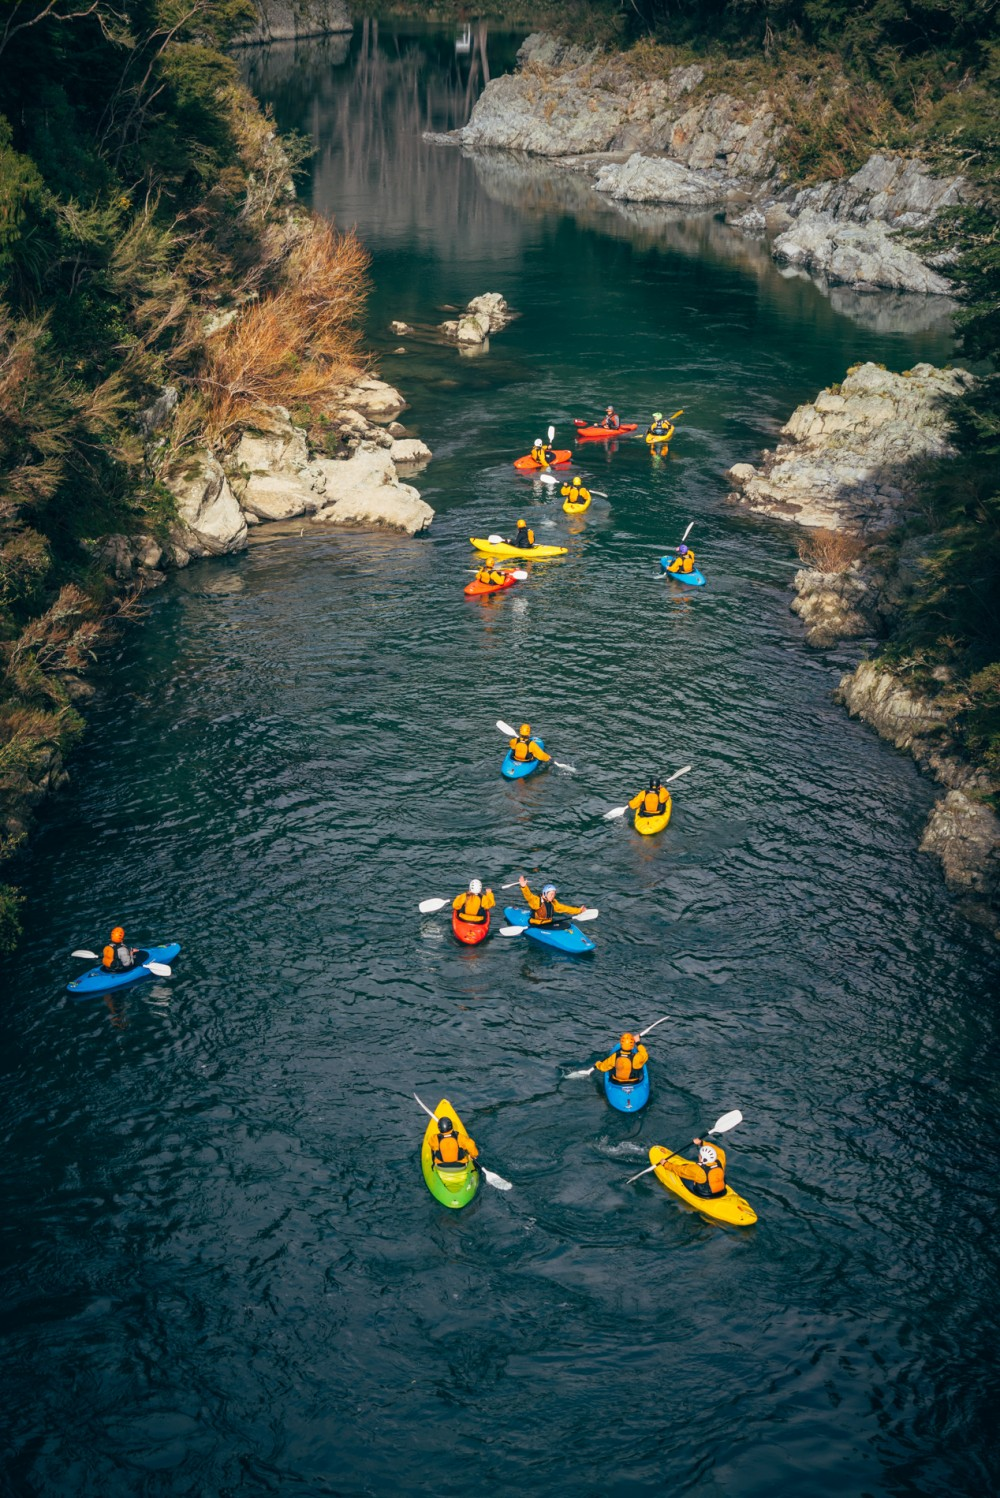 Kayaking on an Outward Bound course